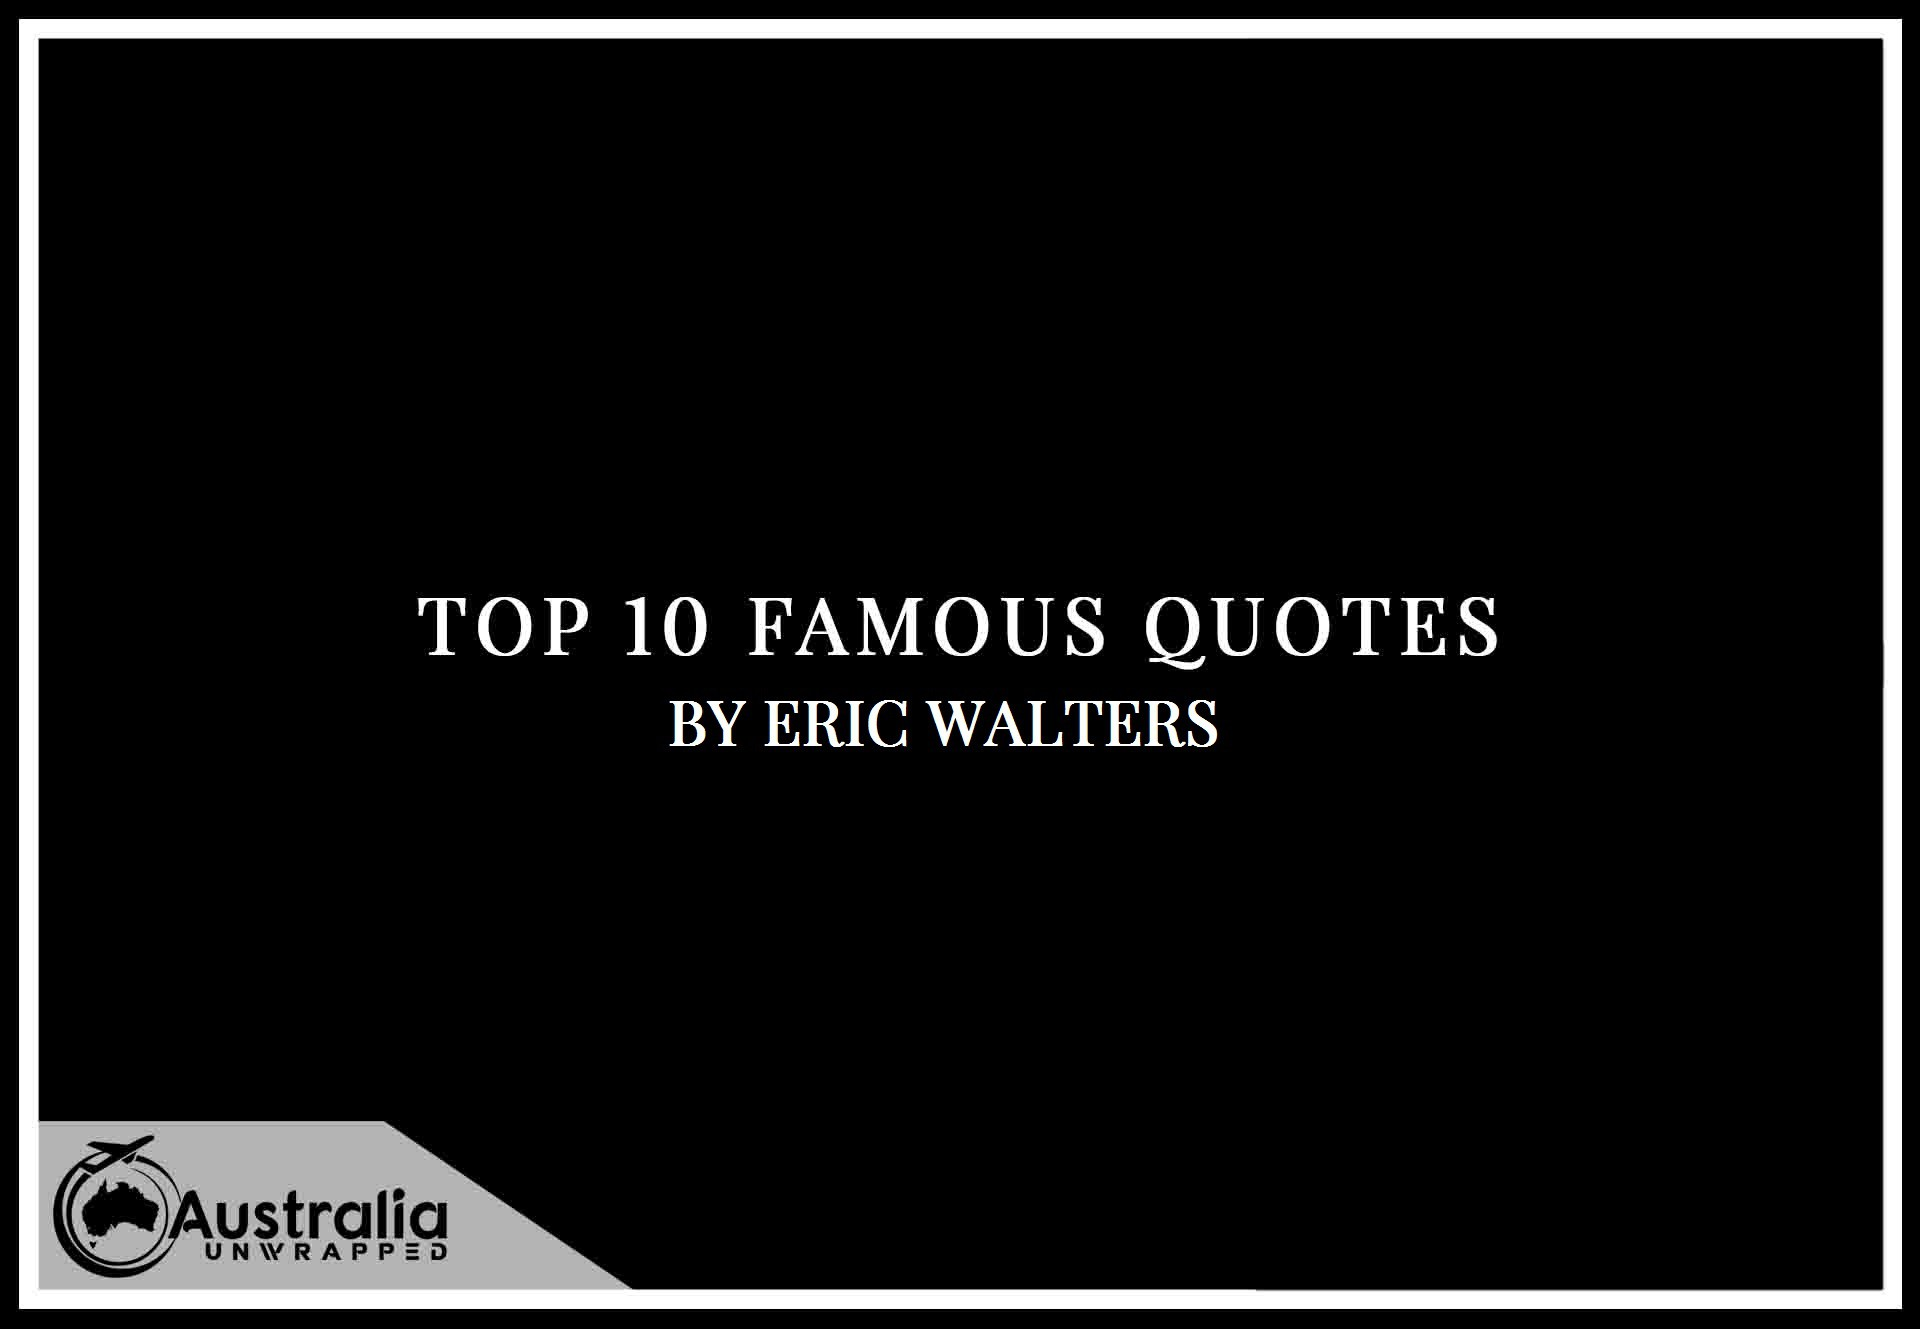 Eric Walters's Top 10 Popular and Famous QuotesEric Walters's Top 10 Popular and Famous Quotes